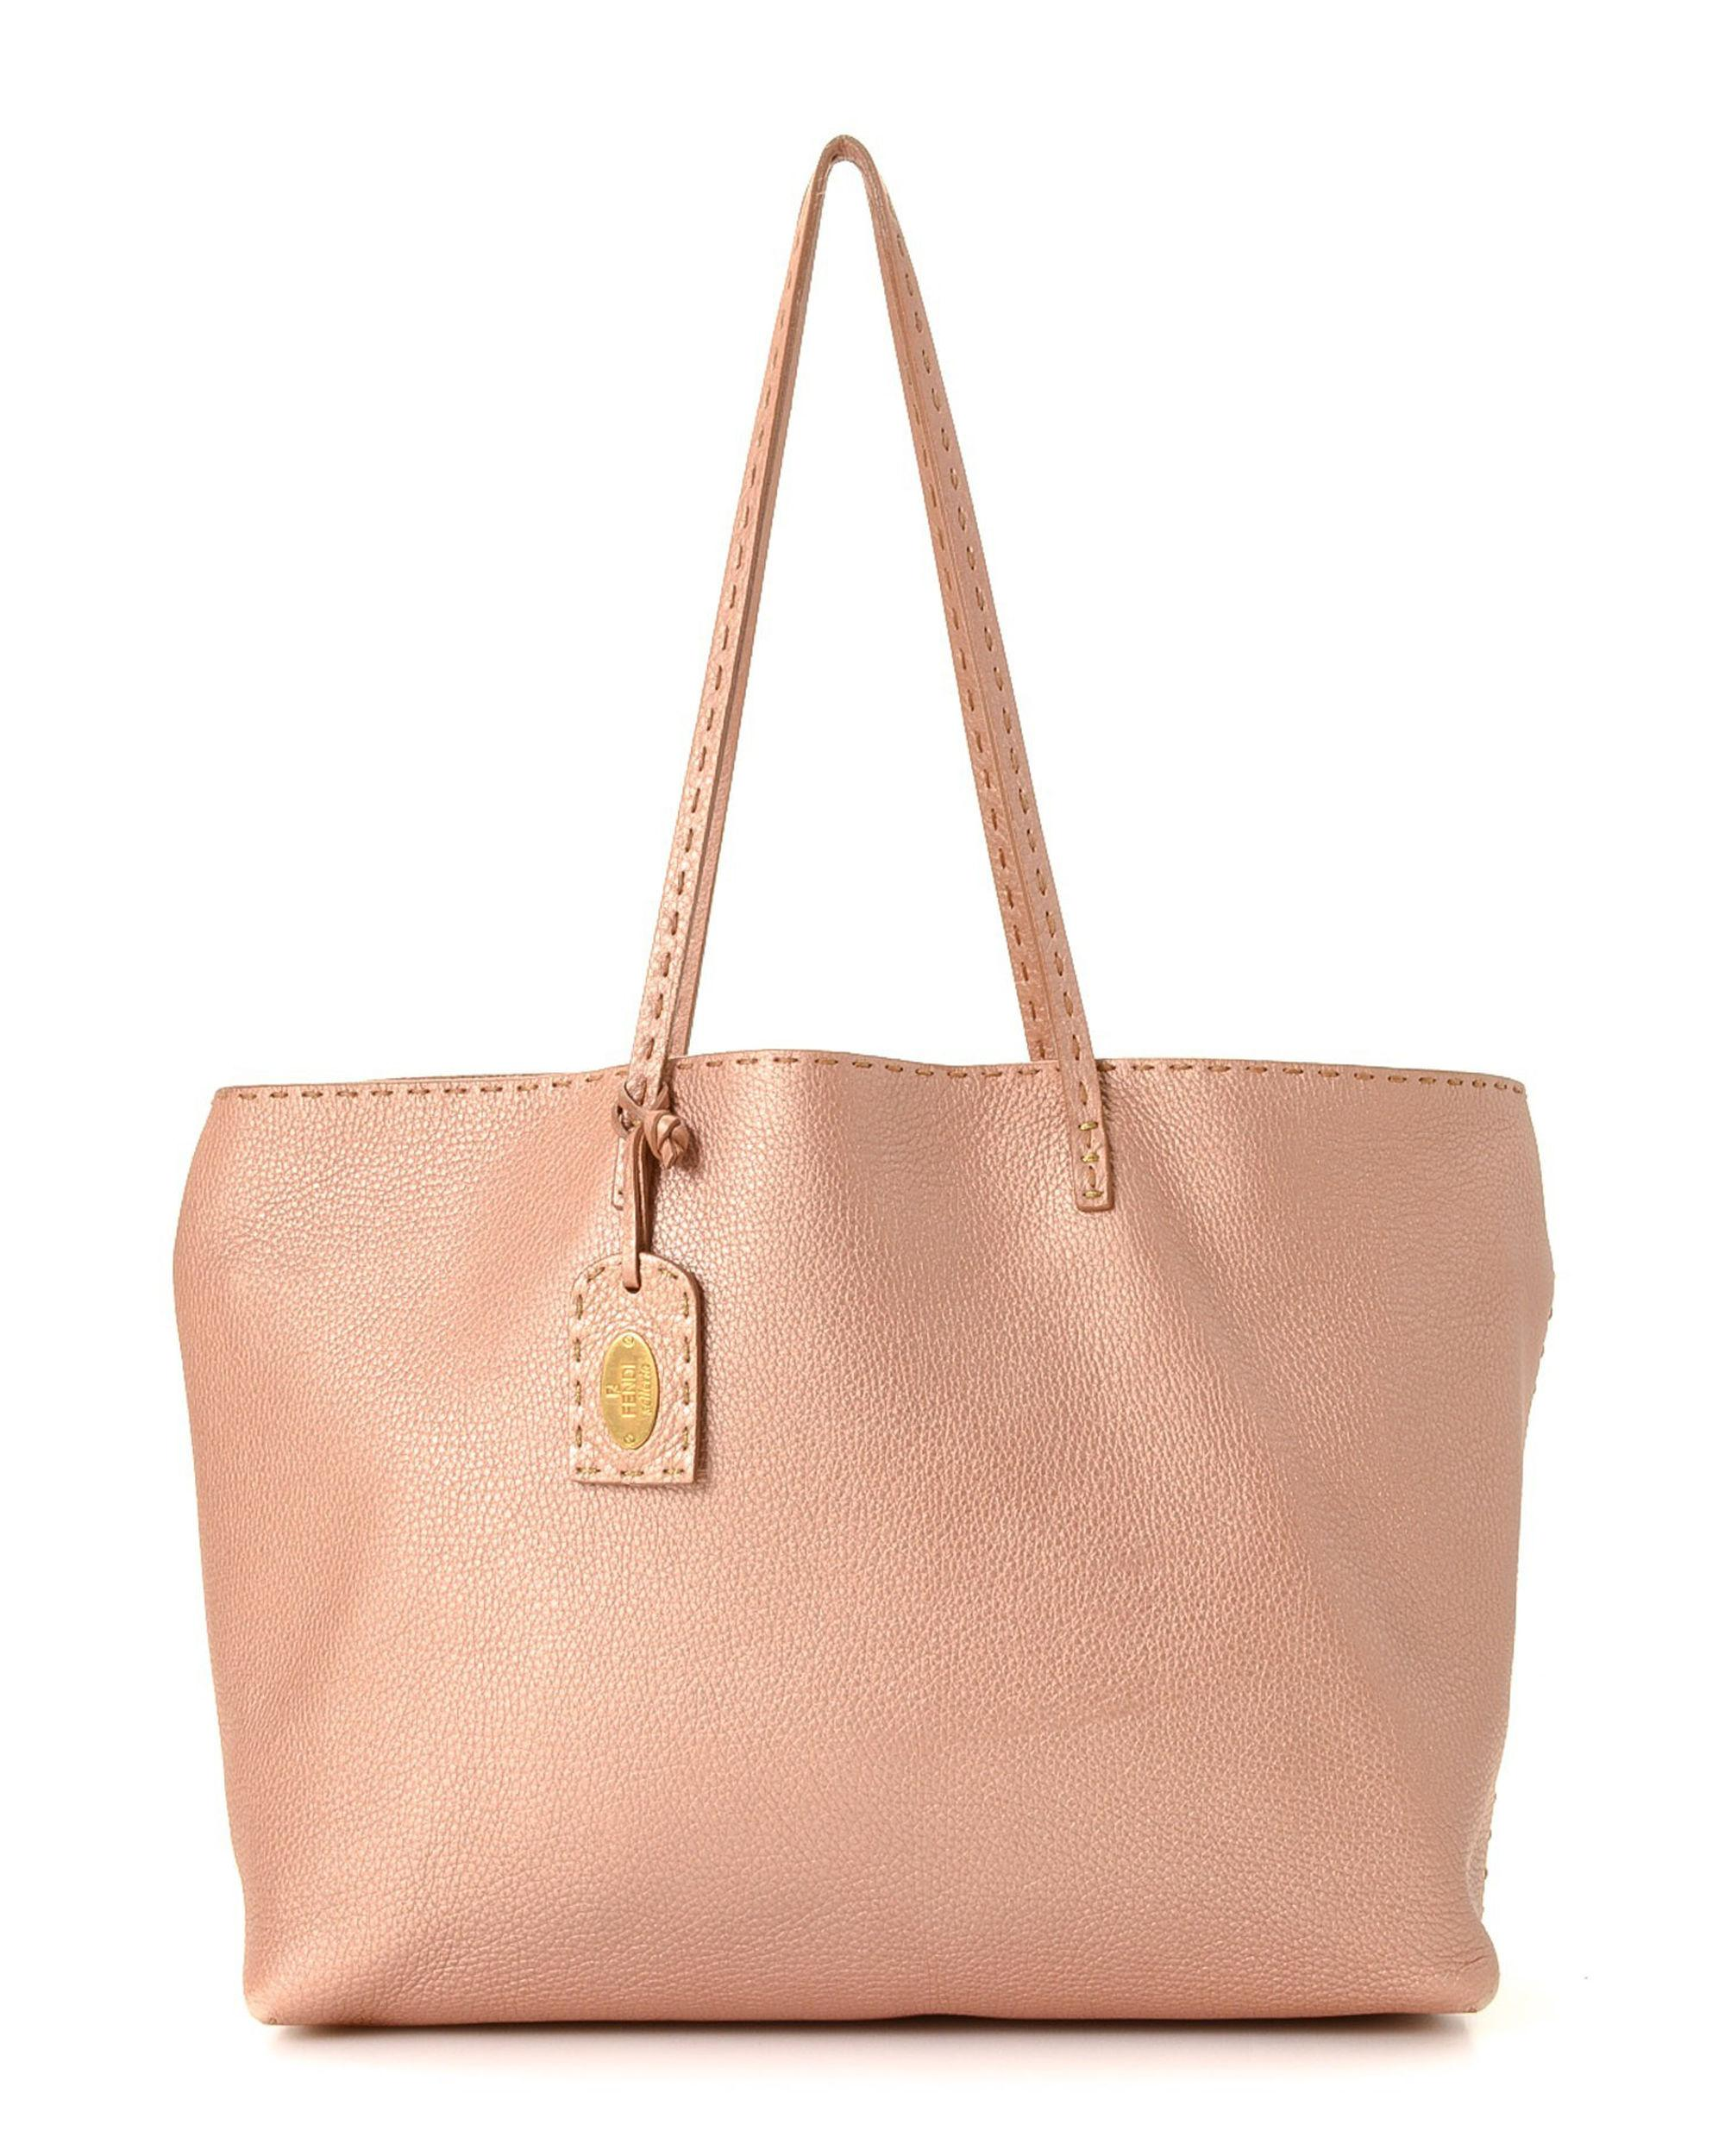 a27387832abf Lyst - Fendi Selleria Tote Bag - Vintage in Pink